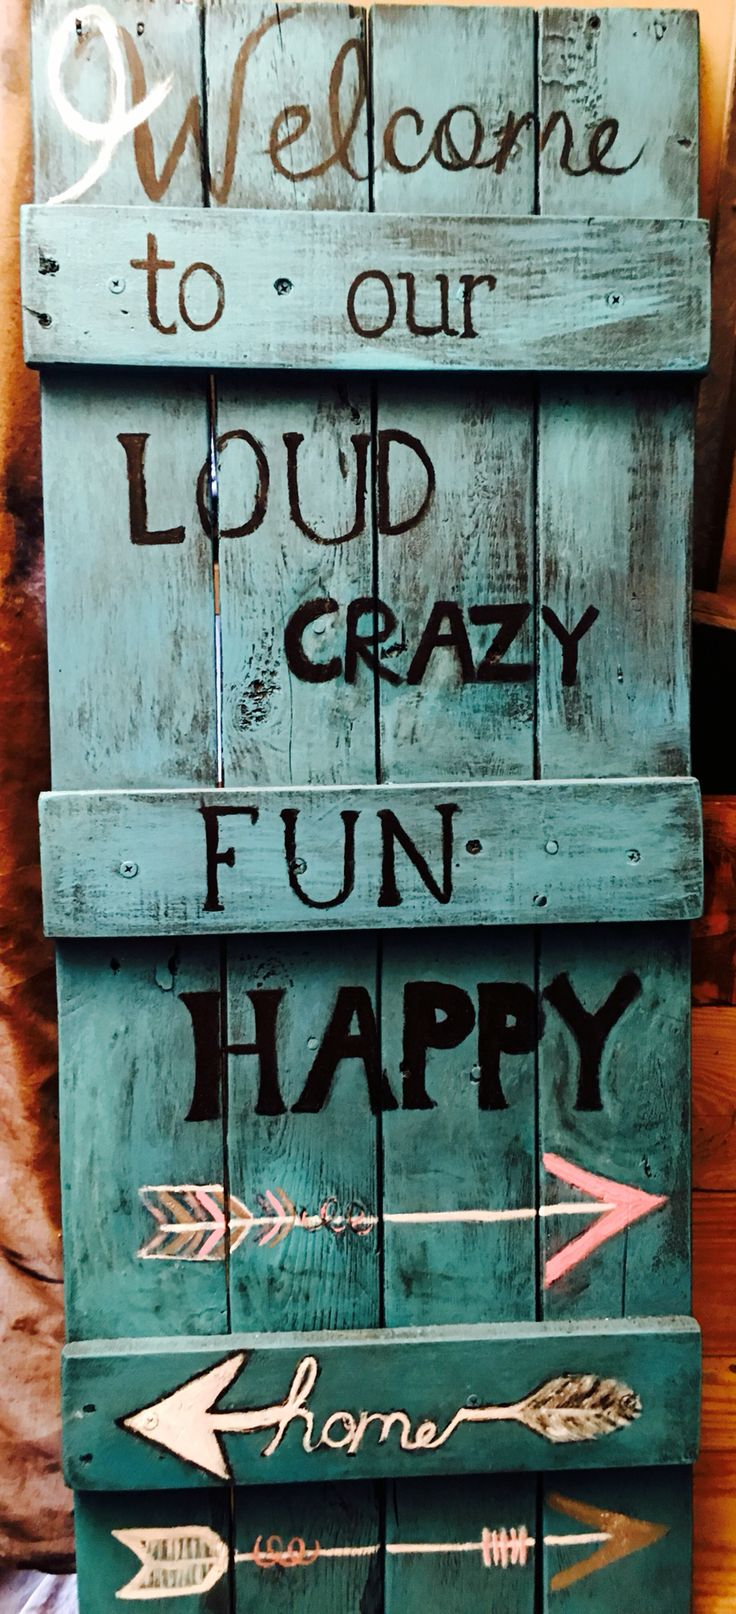 Pallet wood sign. Welcome to our home. Turquoise distressed.  Arrows. Made by Angry Wood Design. Bienvenido a nuestro hogar loco divertido loco